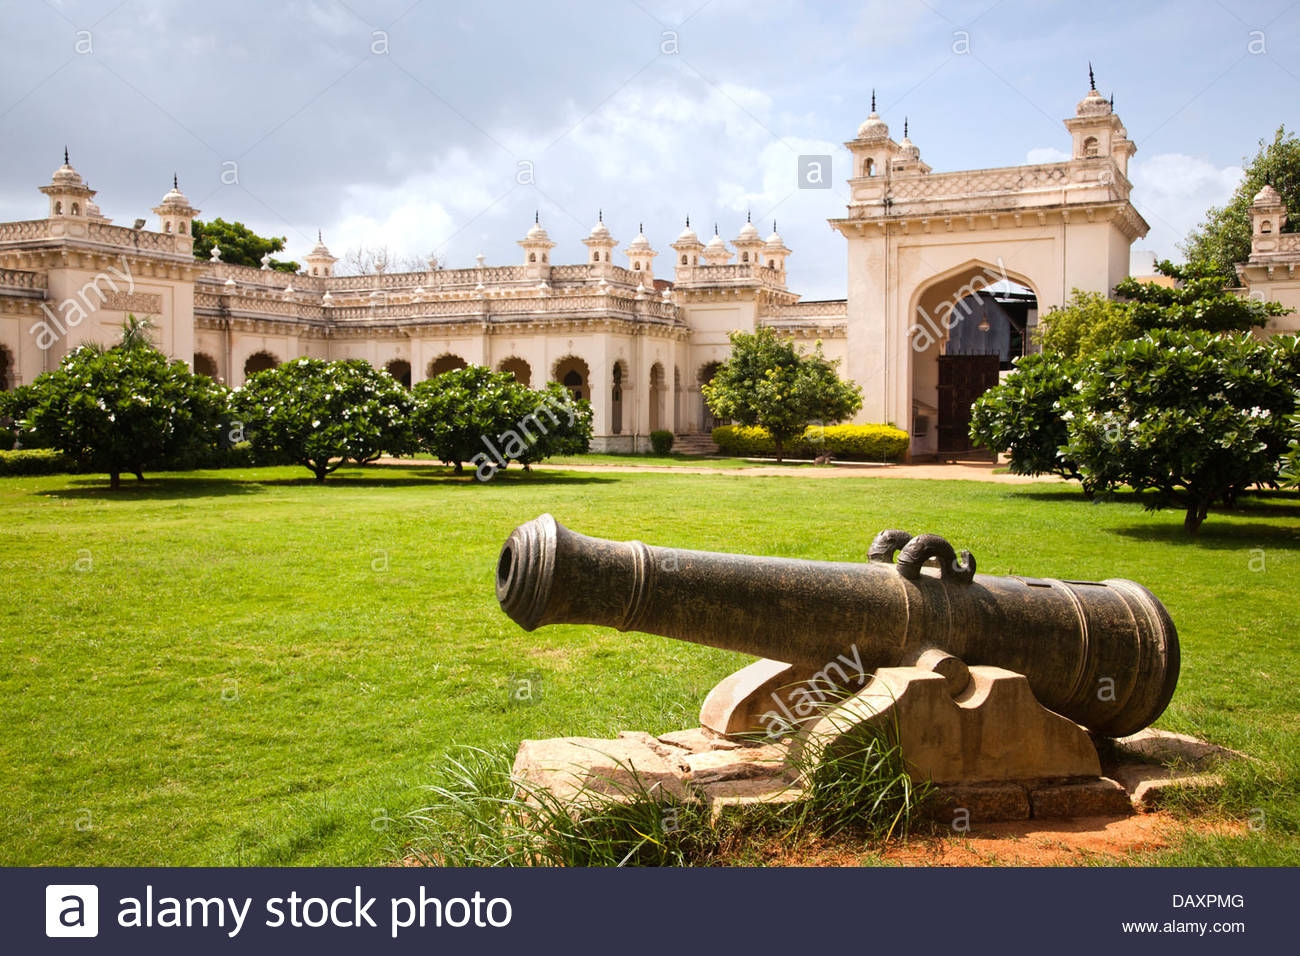 Cannon in the lawn with palace in the background Chowmahalla 1300x956